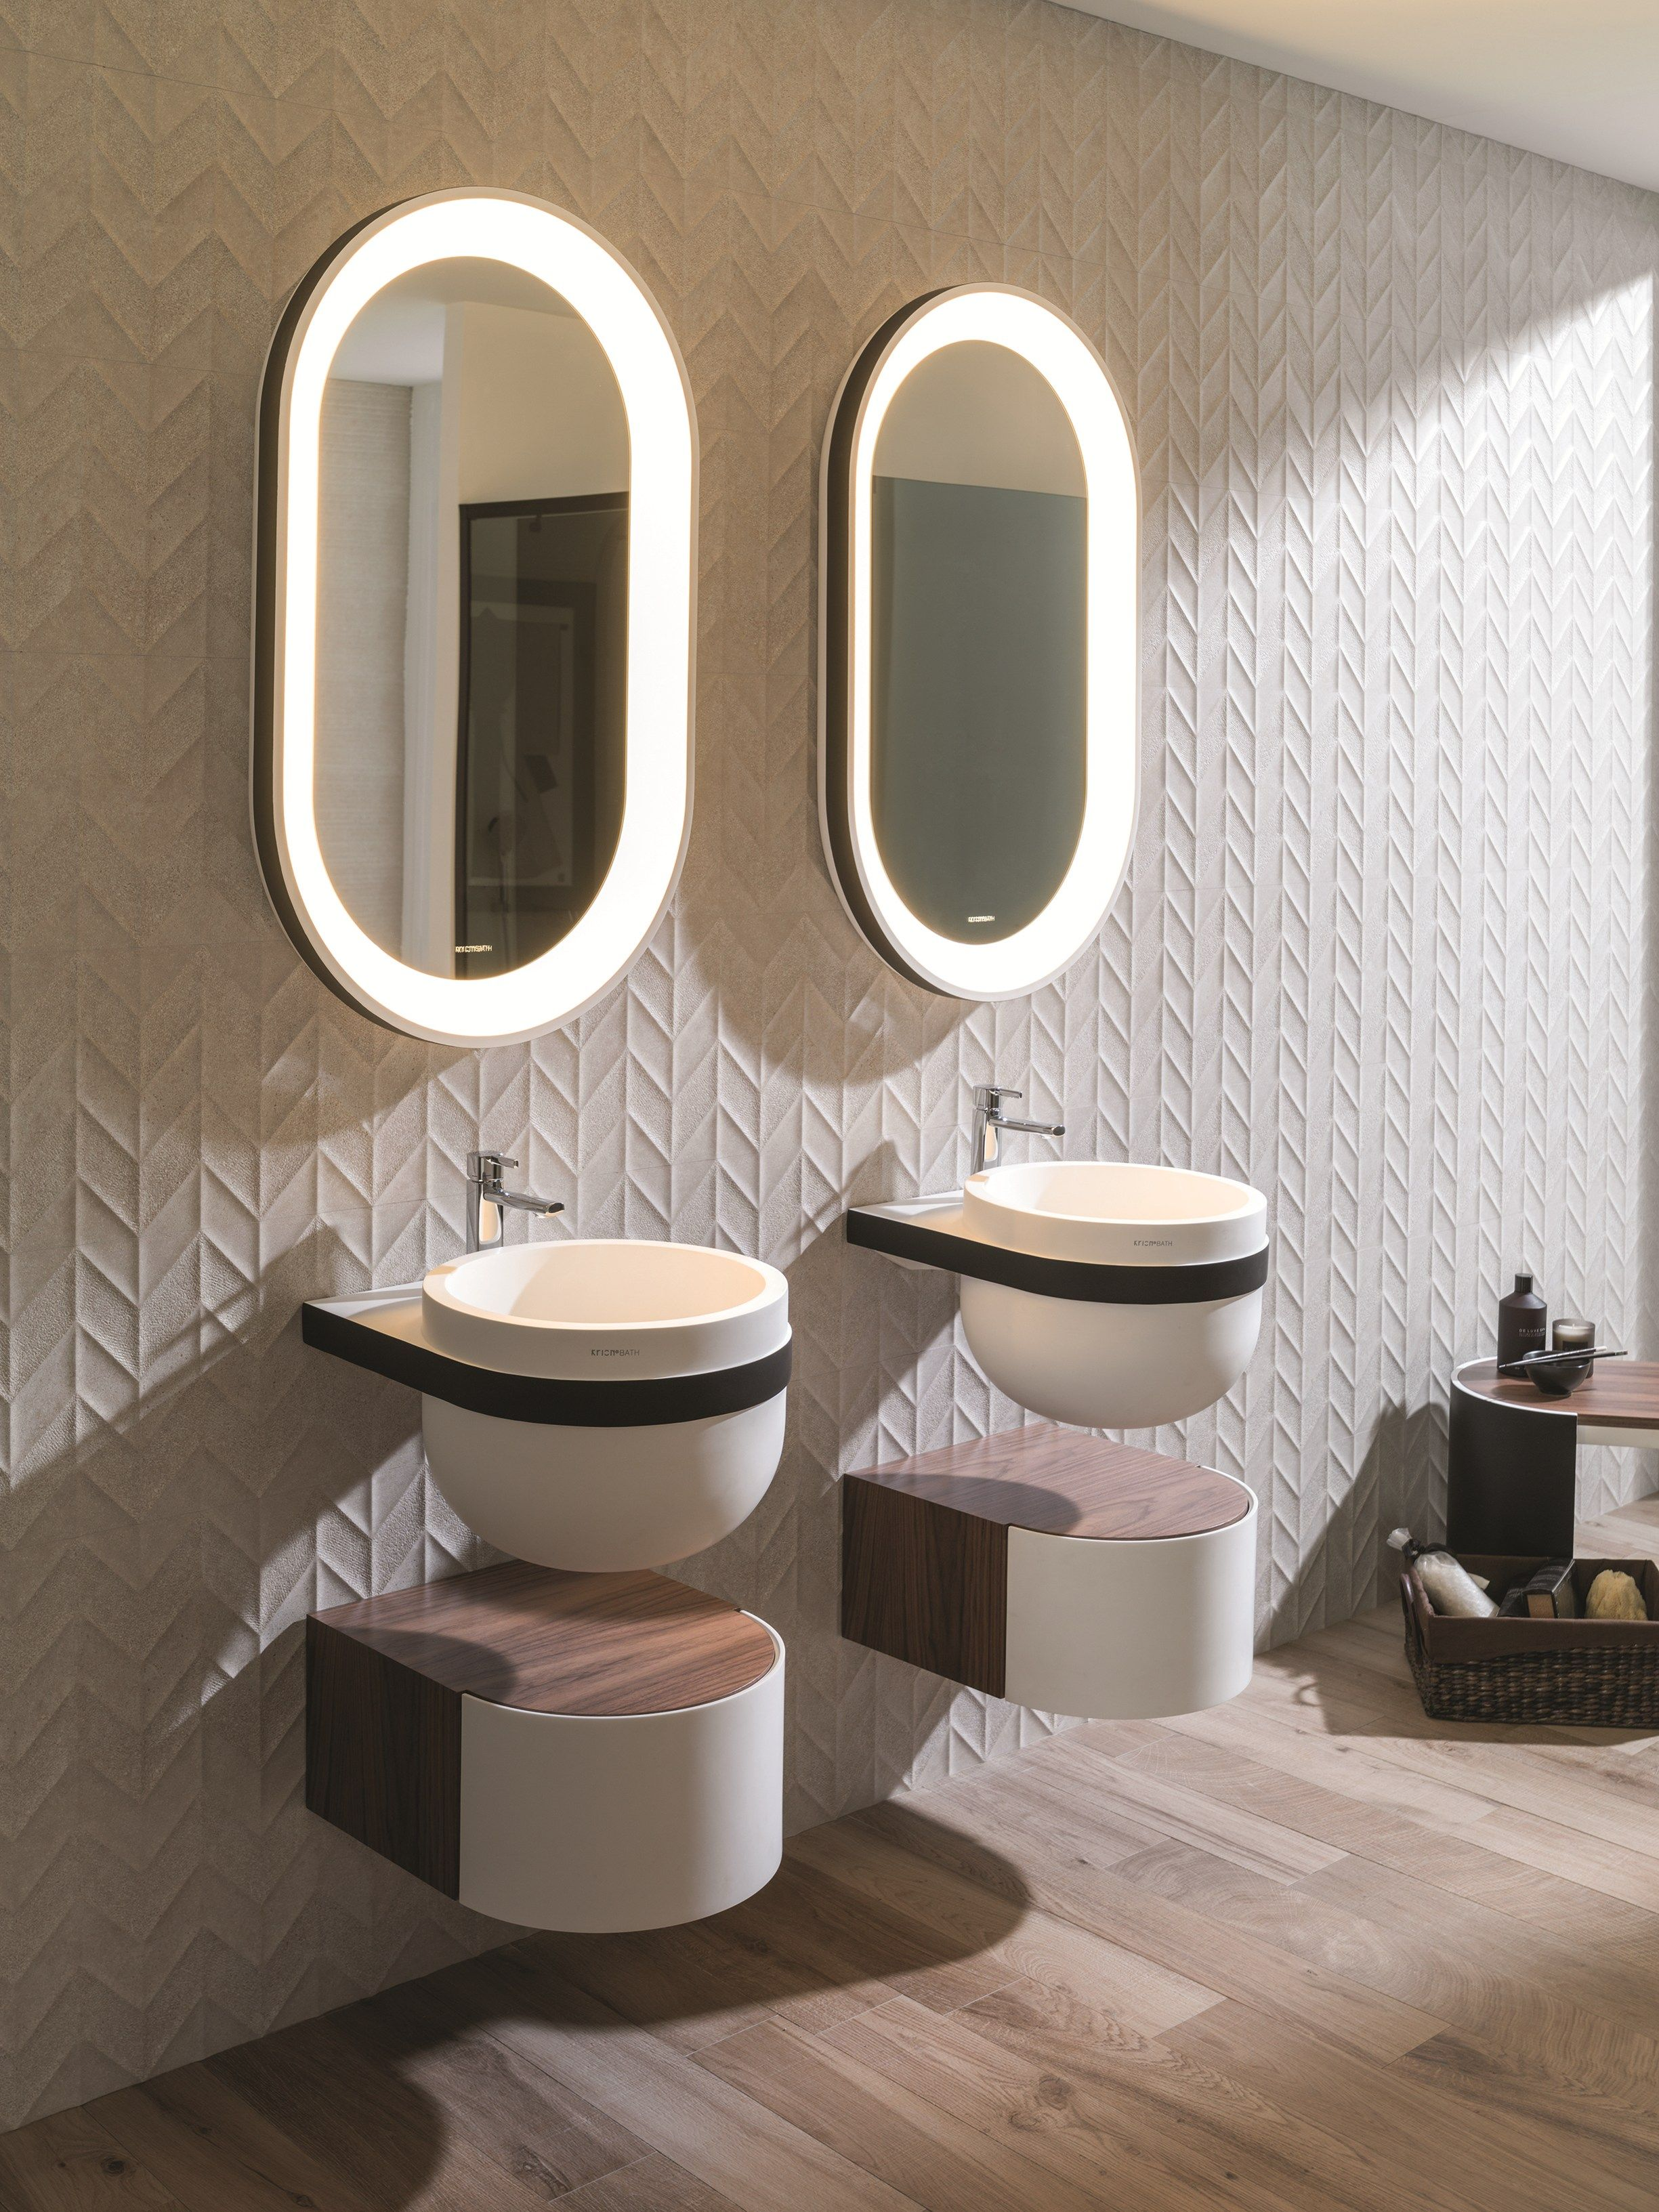 Systempool round wall-mounted krion® washbasin aro | systempool | bathroom